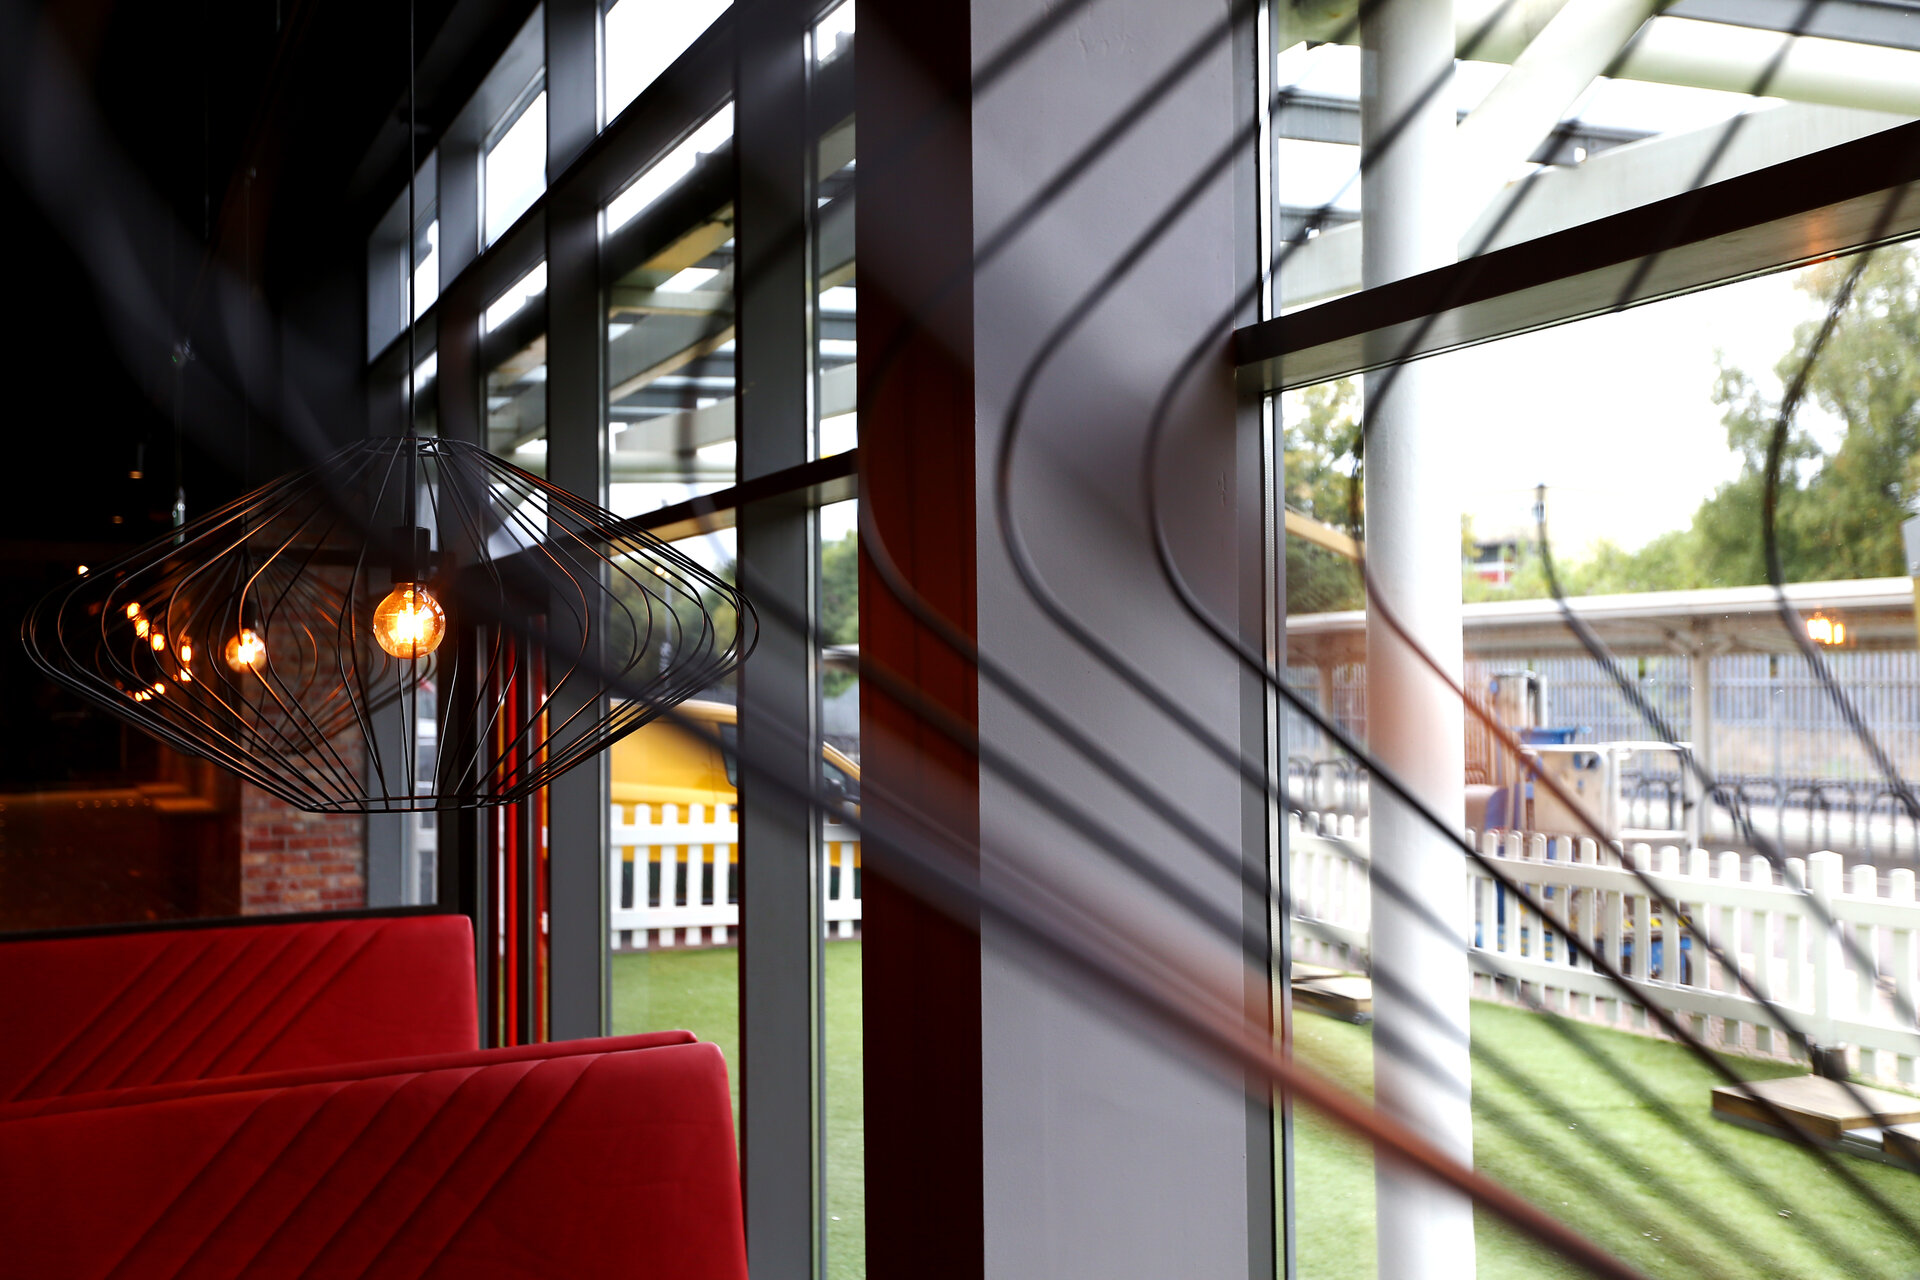 SOUTHAMPTON, ENGLAND - SEPTEMBER 11: General view showing Southampton FC's new 'Gas Works' Pub located within the Kingsland stand at St Mary's Stadium on September 11, 2018 in Southampton, England. (Photo by James Bridle - Southampton FC/Southampton FC via Getty Images)